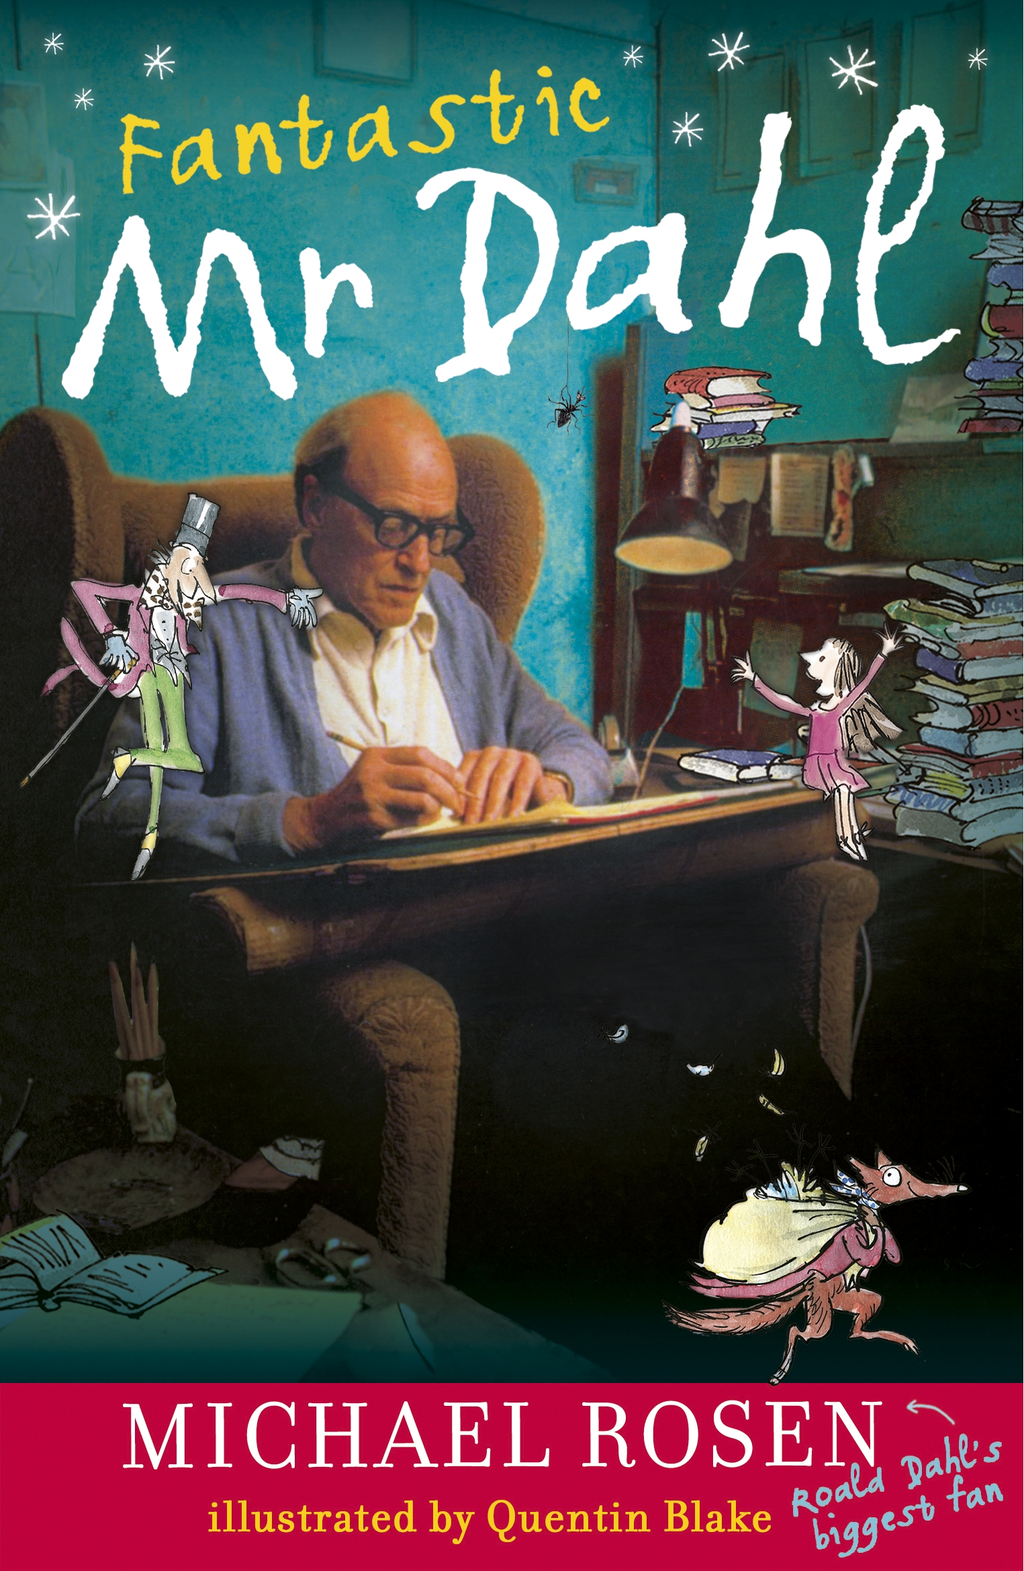 Fantastic Mr Dahl By: Michael Rosen